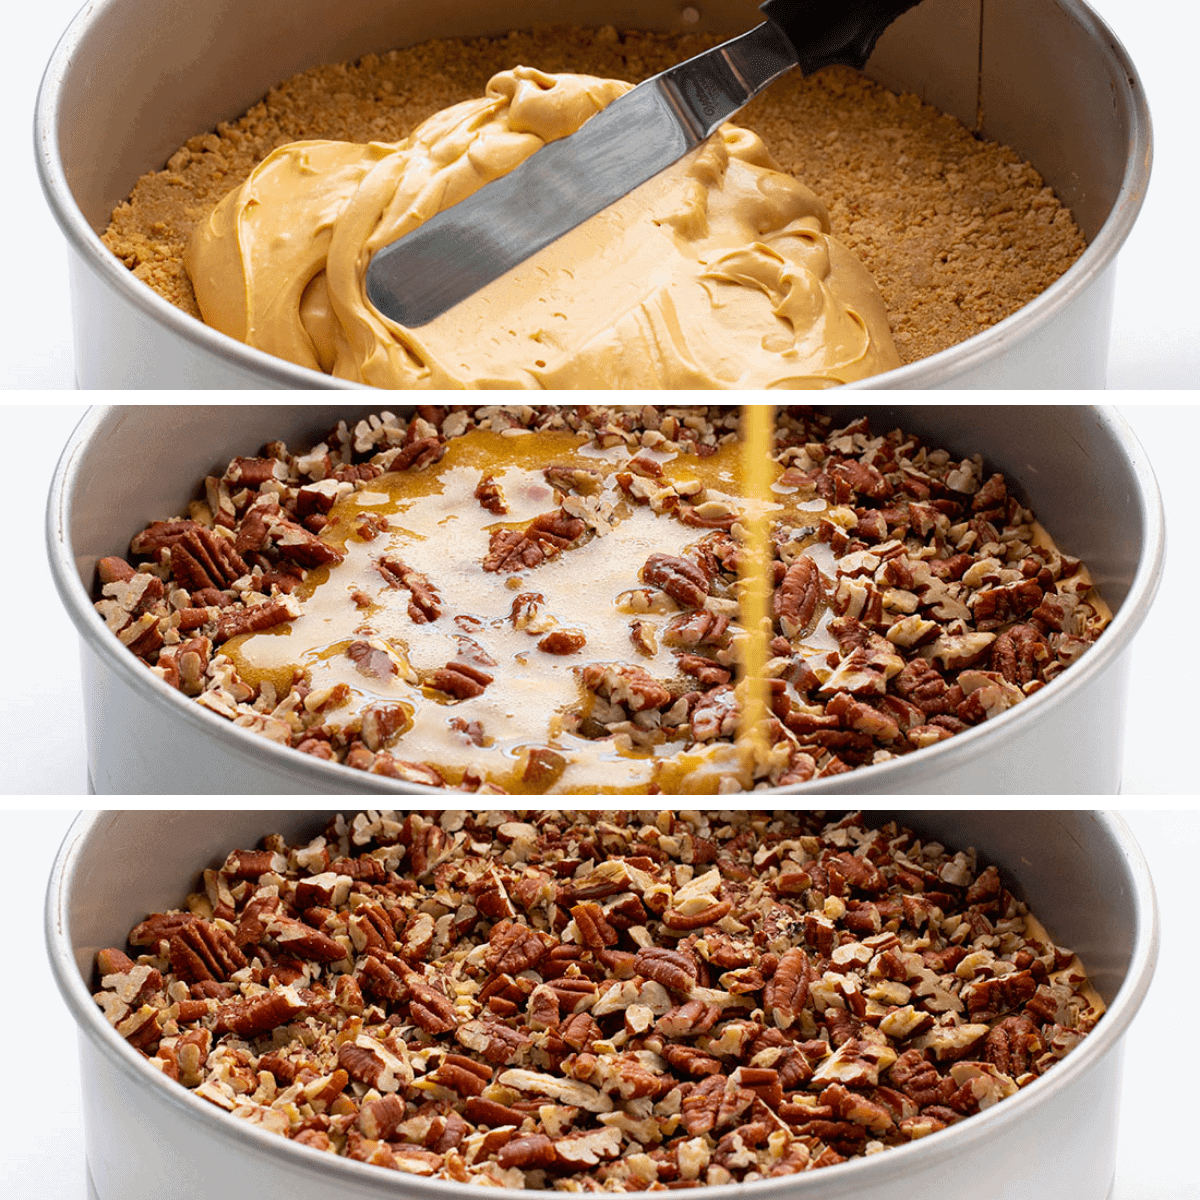 Adding the cheesecake, sauce, and pecans to Dulce de Leche Pecan Pie